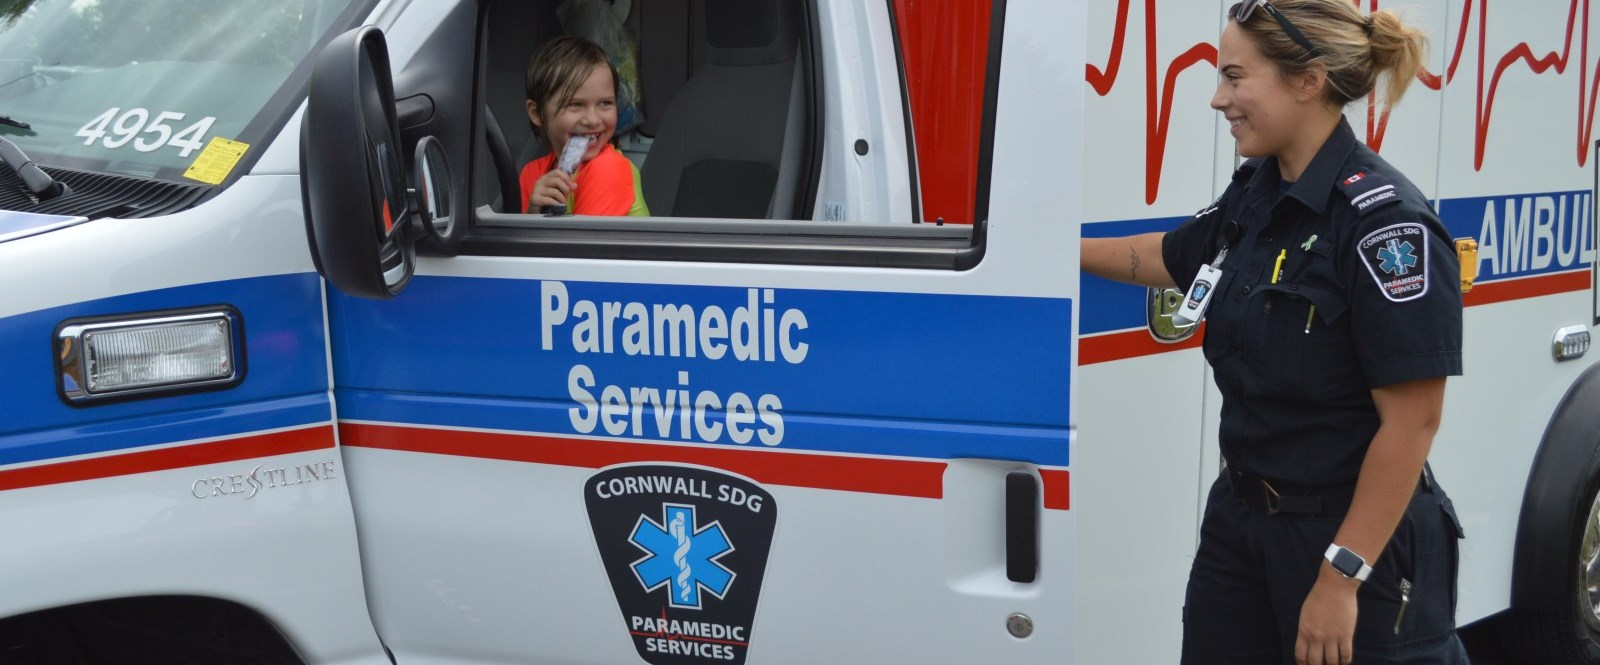 Paramedic smiling at child behind wheel of ambulance